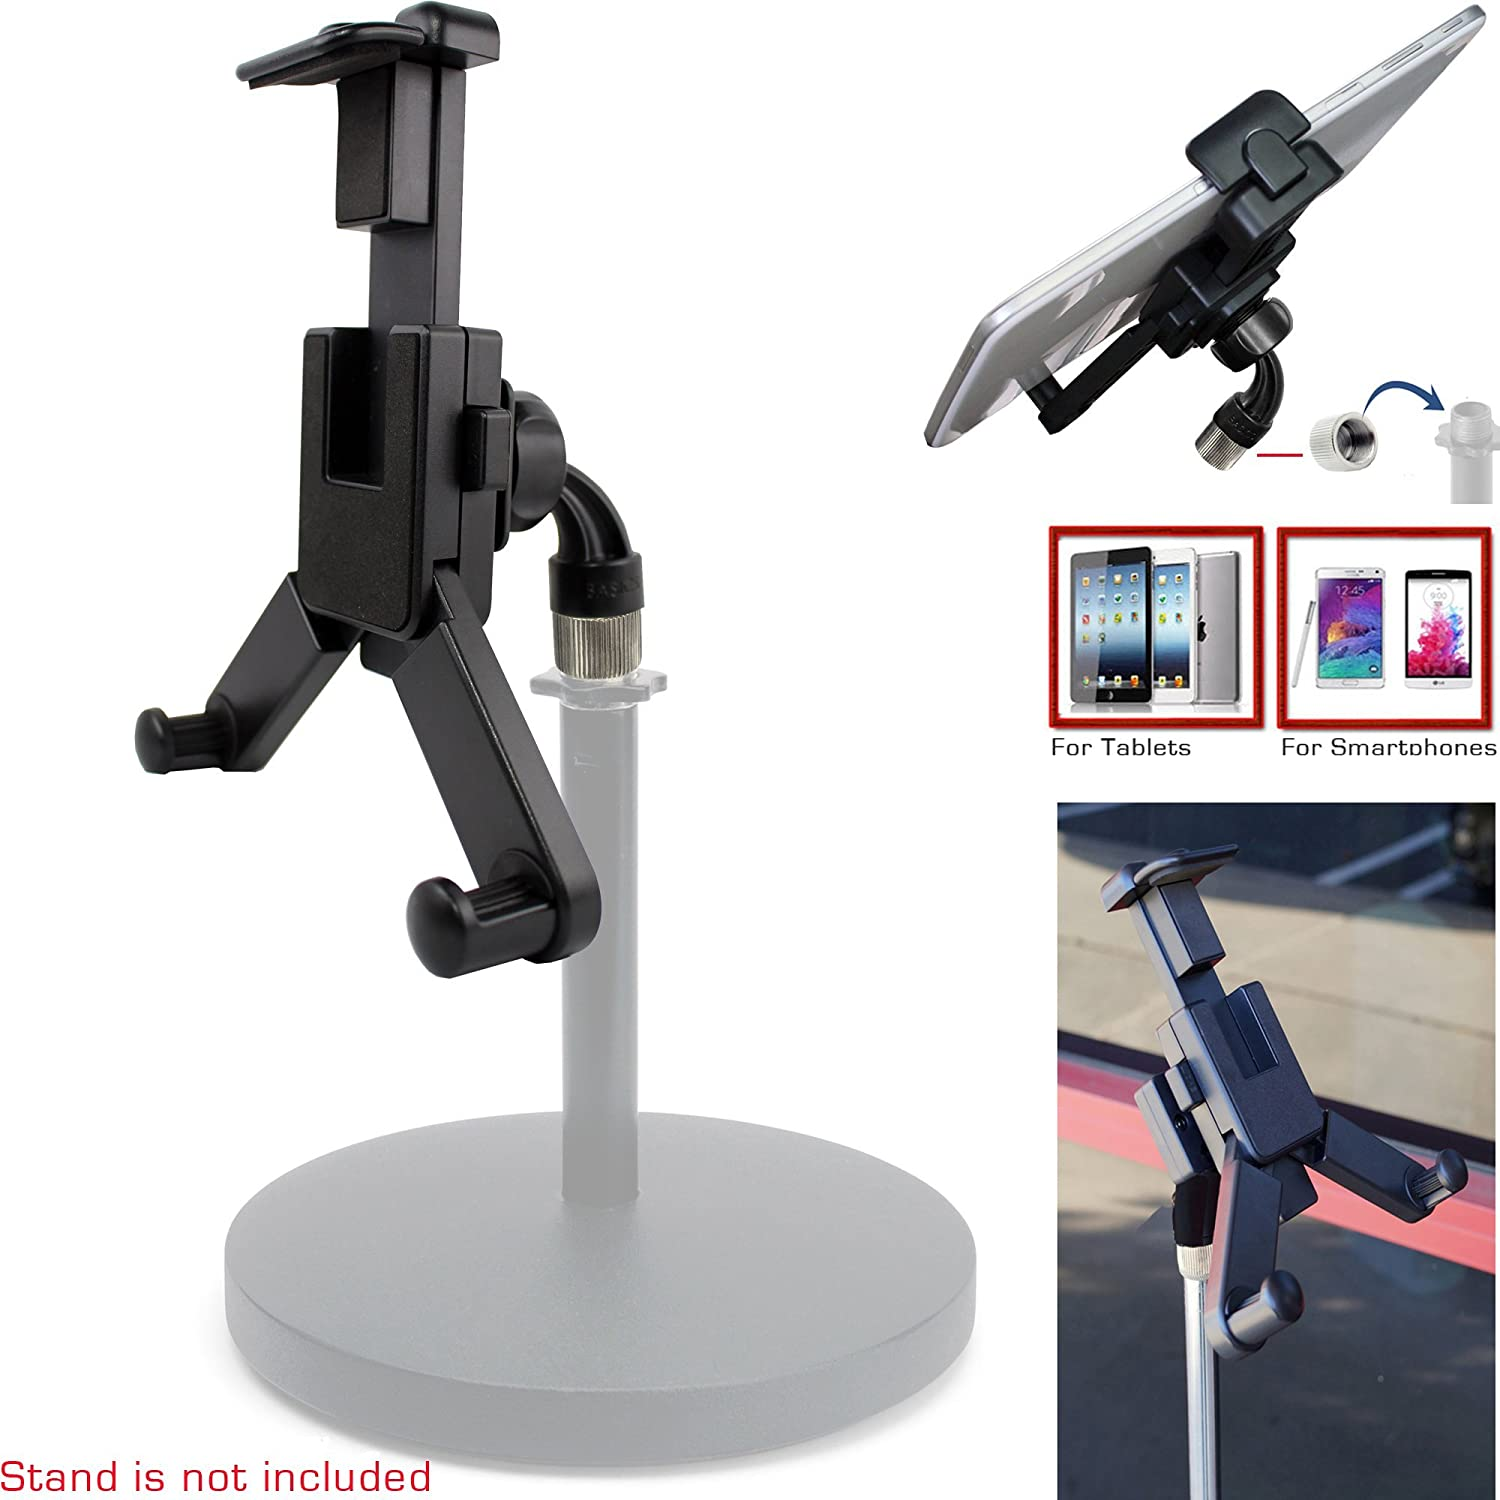 ChargerCity 360° swivel Smartphone Tablet Mount Holder w/ 5/8' Tripod Mic Microphone Stand Adapter mount for Apple iPad Pro Air Mini iPhone 6s Plus 6 SE Samsung Galaxy S6 S7 Edge Note SW-MIC1+SW16+HLD25